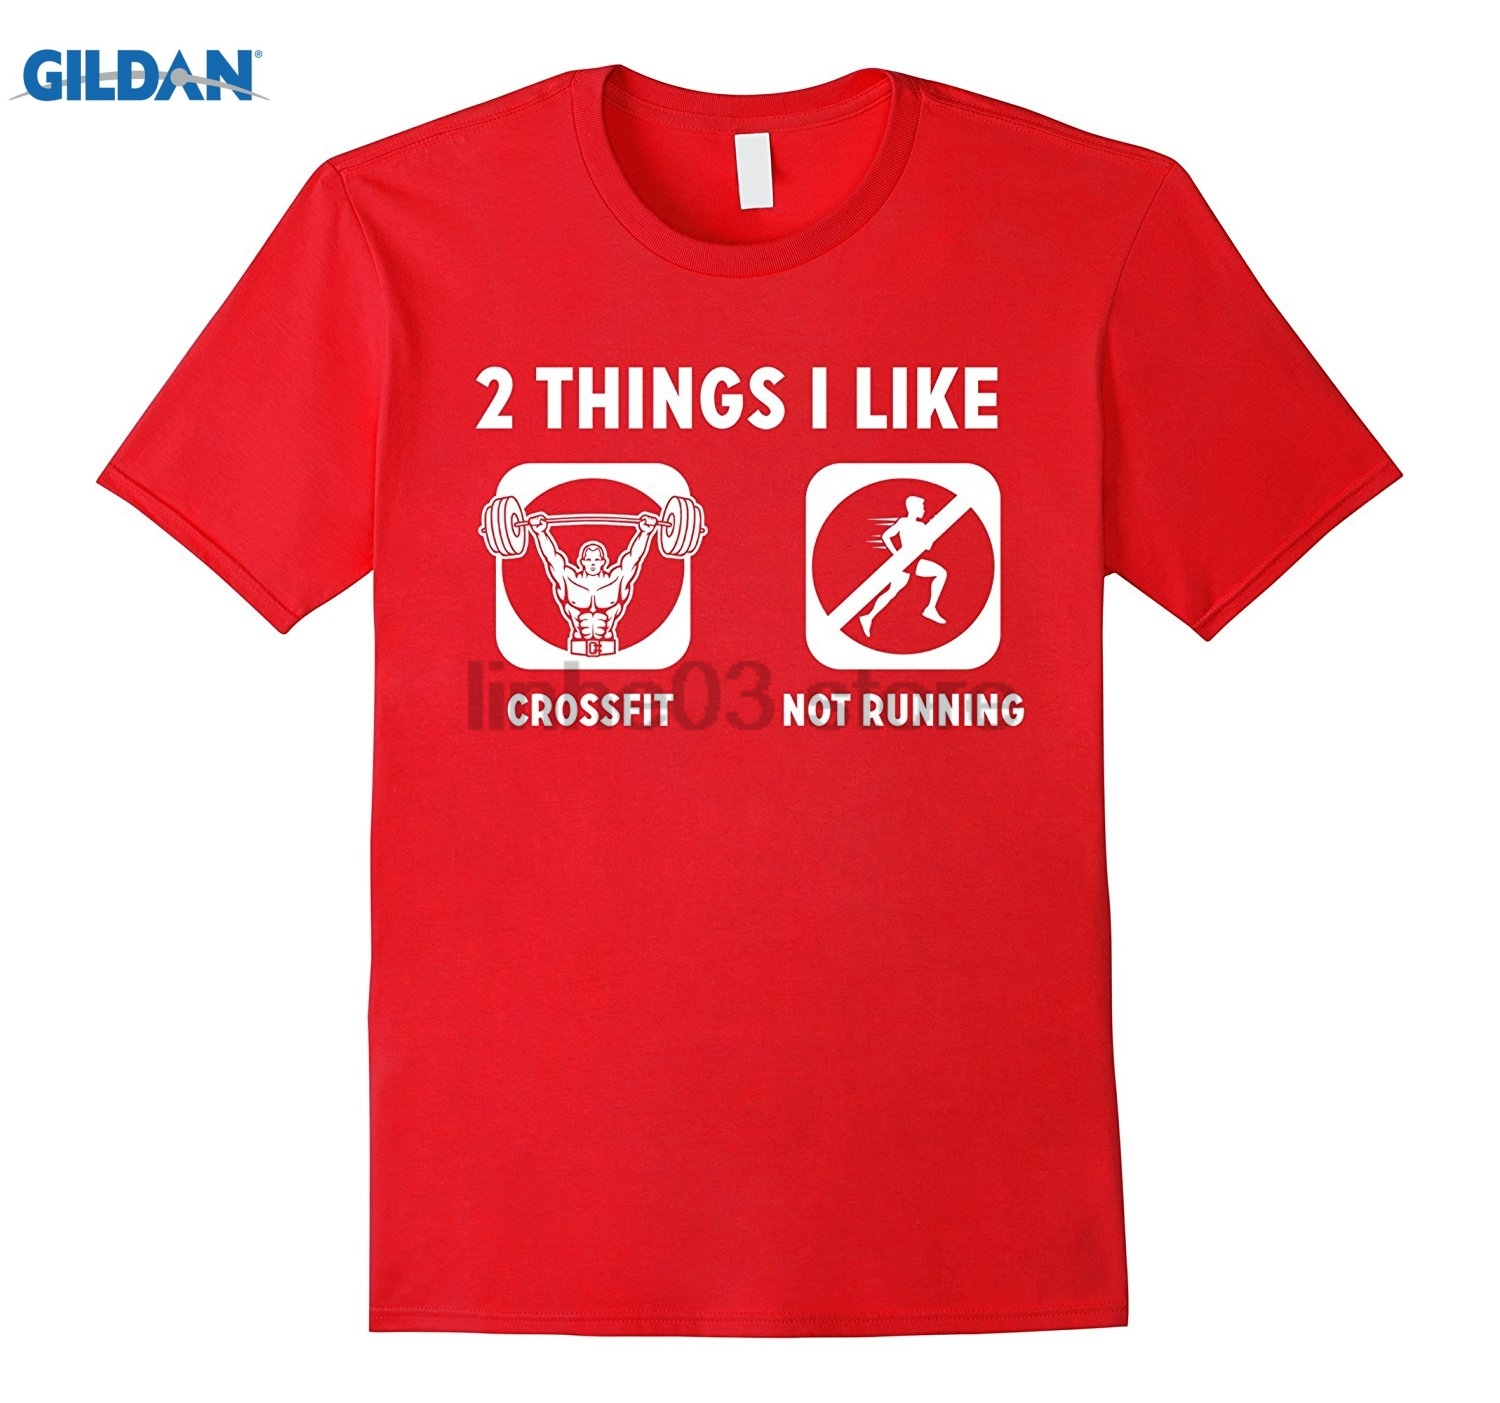 GILDAN 2 Things I Like Cross Fit Not Funny Fitness TShirt Hot Womens T-shirt Dress femal ...